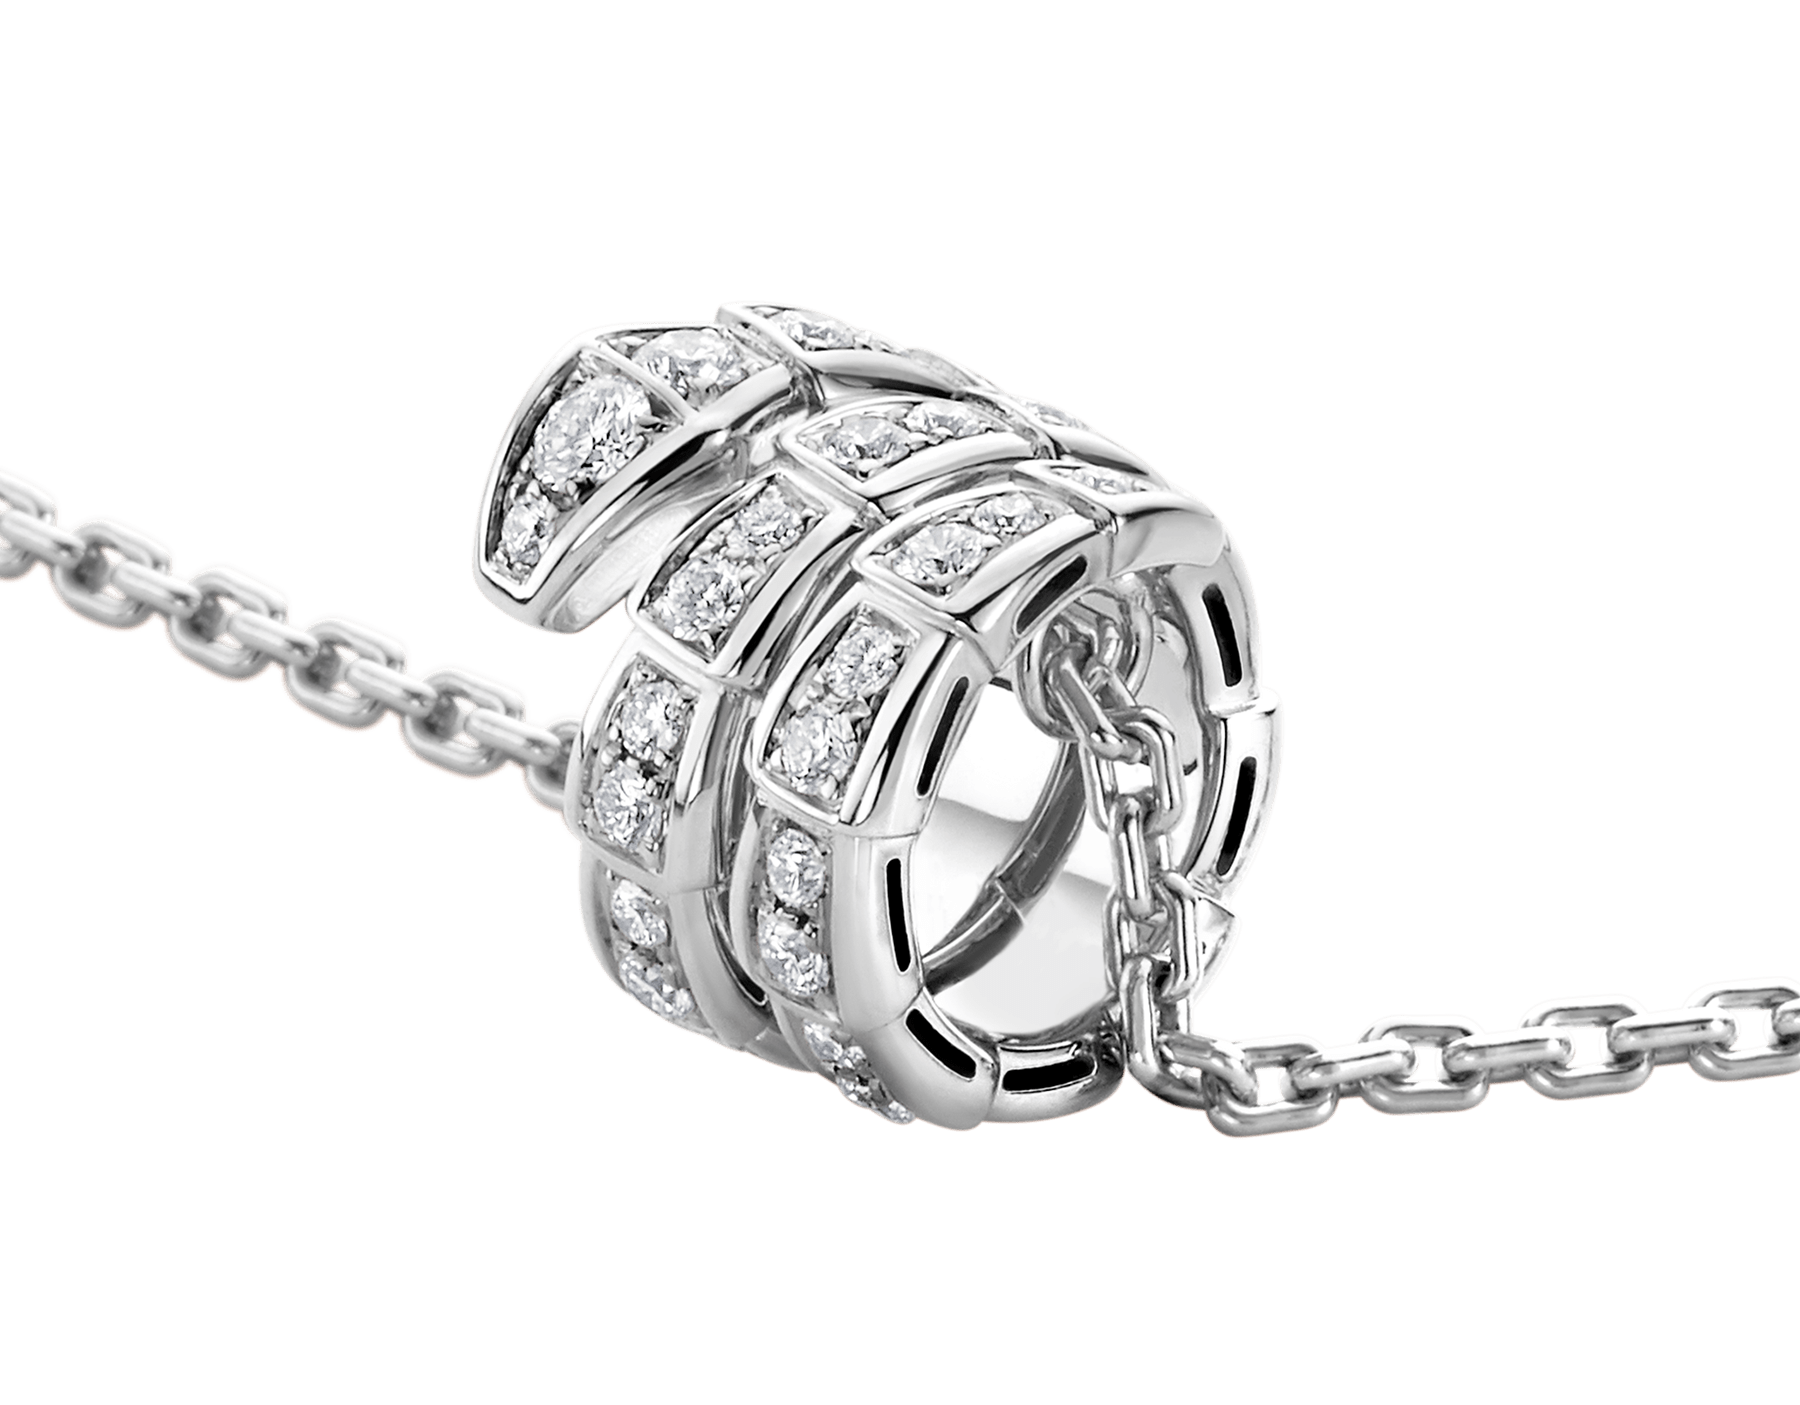 Serpenti Viper pendant necklace in 18 kt white gold set with pavé diamonds 357796 image 3